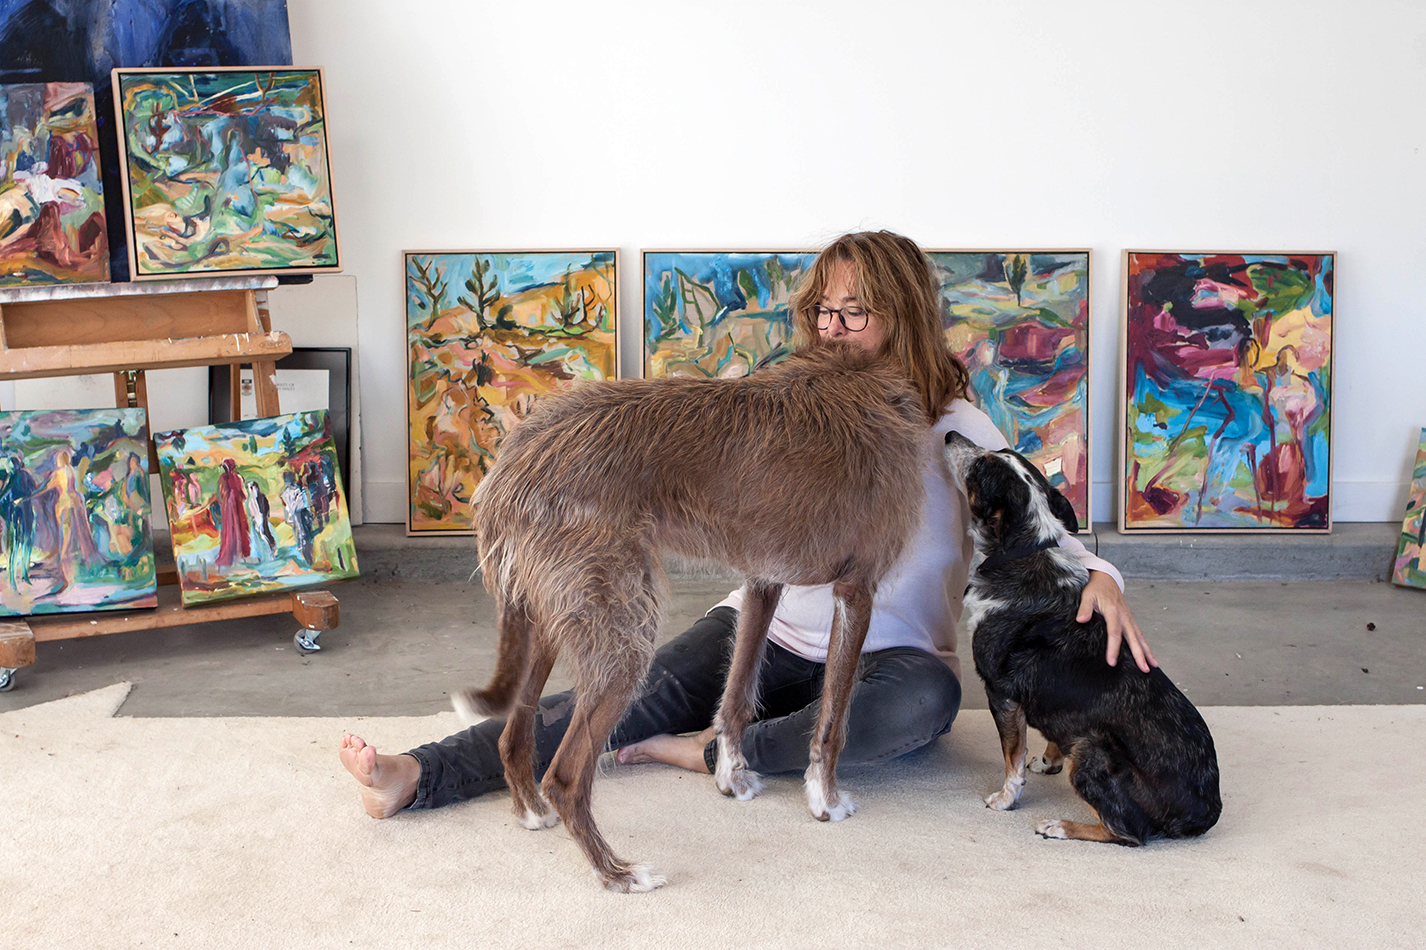 Australian artist Ruth Stone, studio visit and interview - The Corner Store Gallery, photograph by Madeline Young